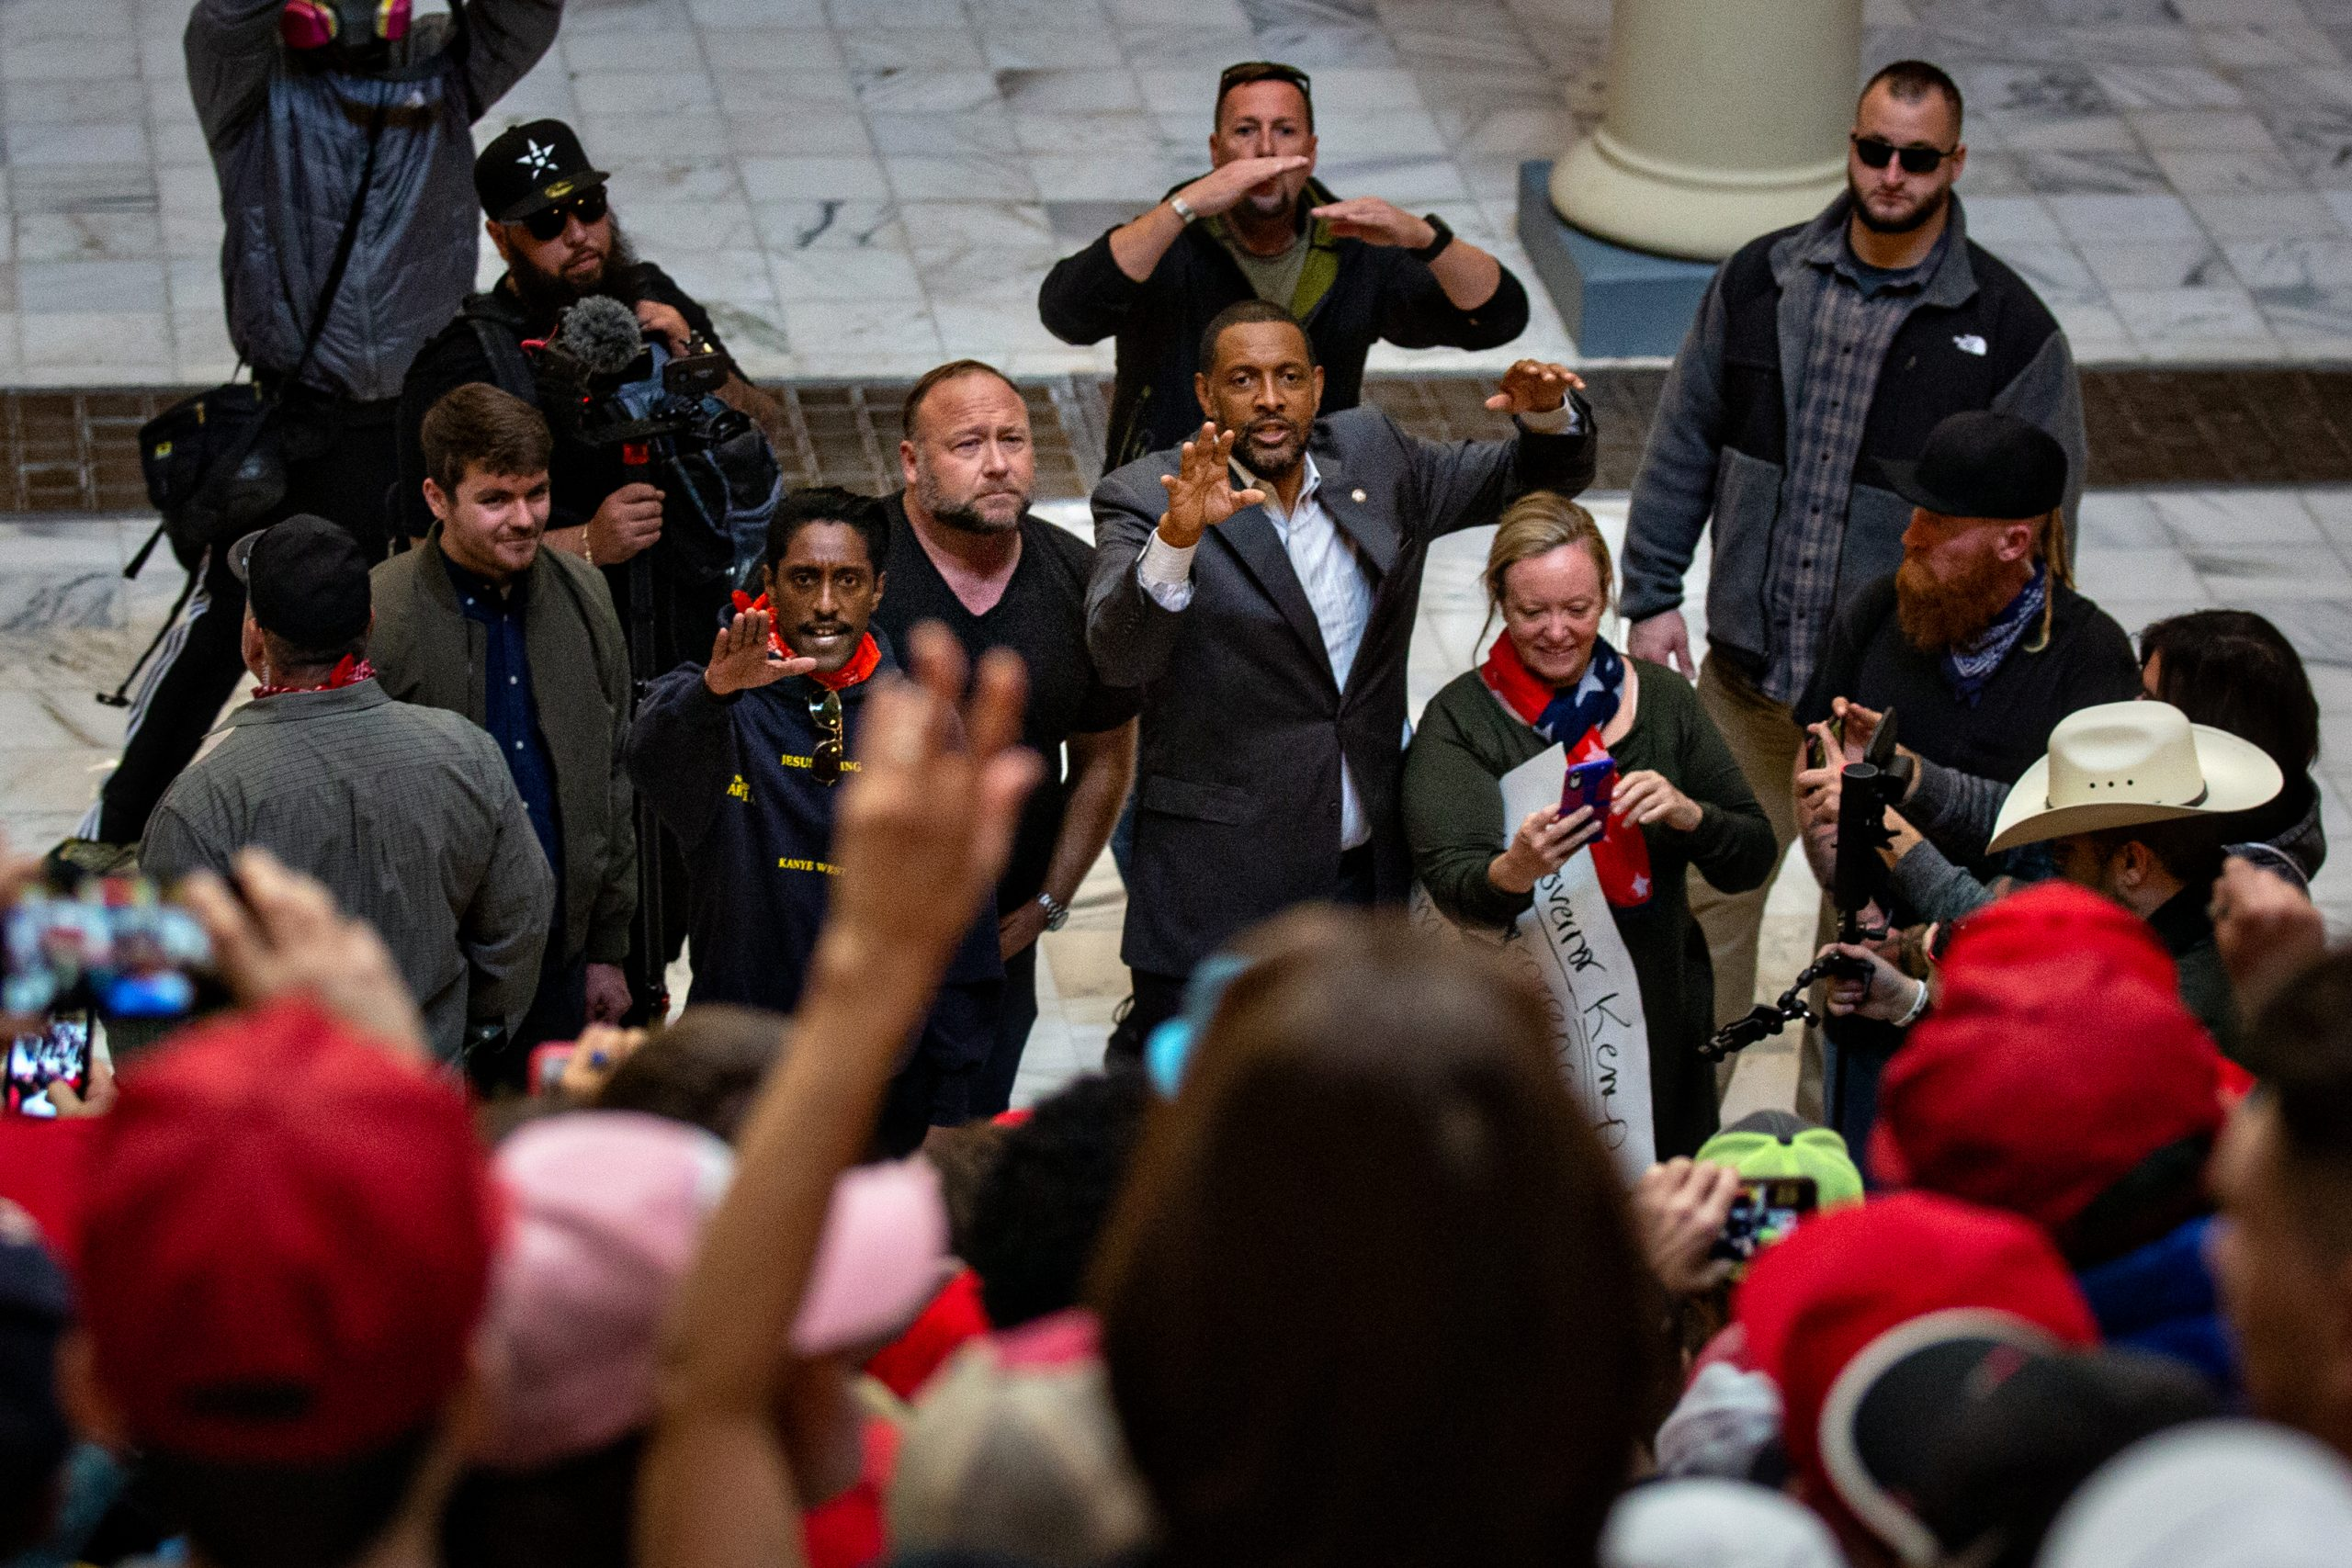 , Pro-Trump Rally Organizer Name-Checks Theory Pushed by Violent Extremists, Saubio Making Wealth